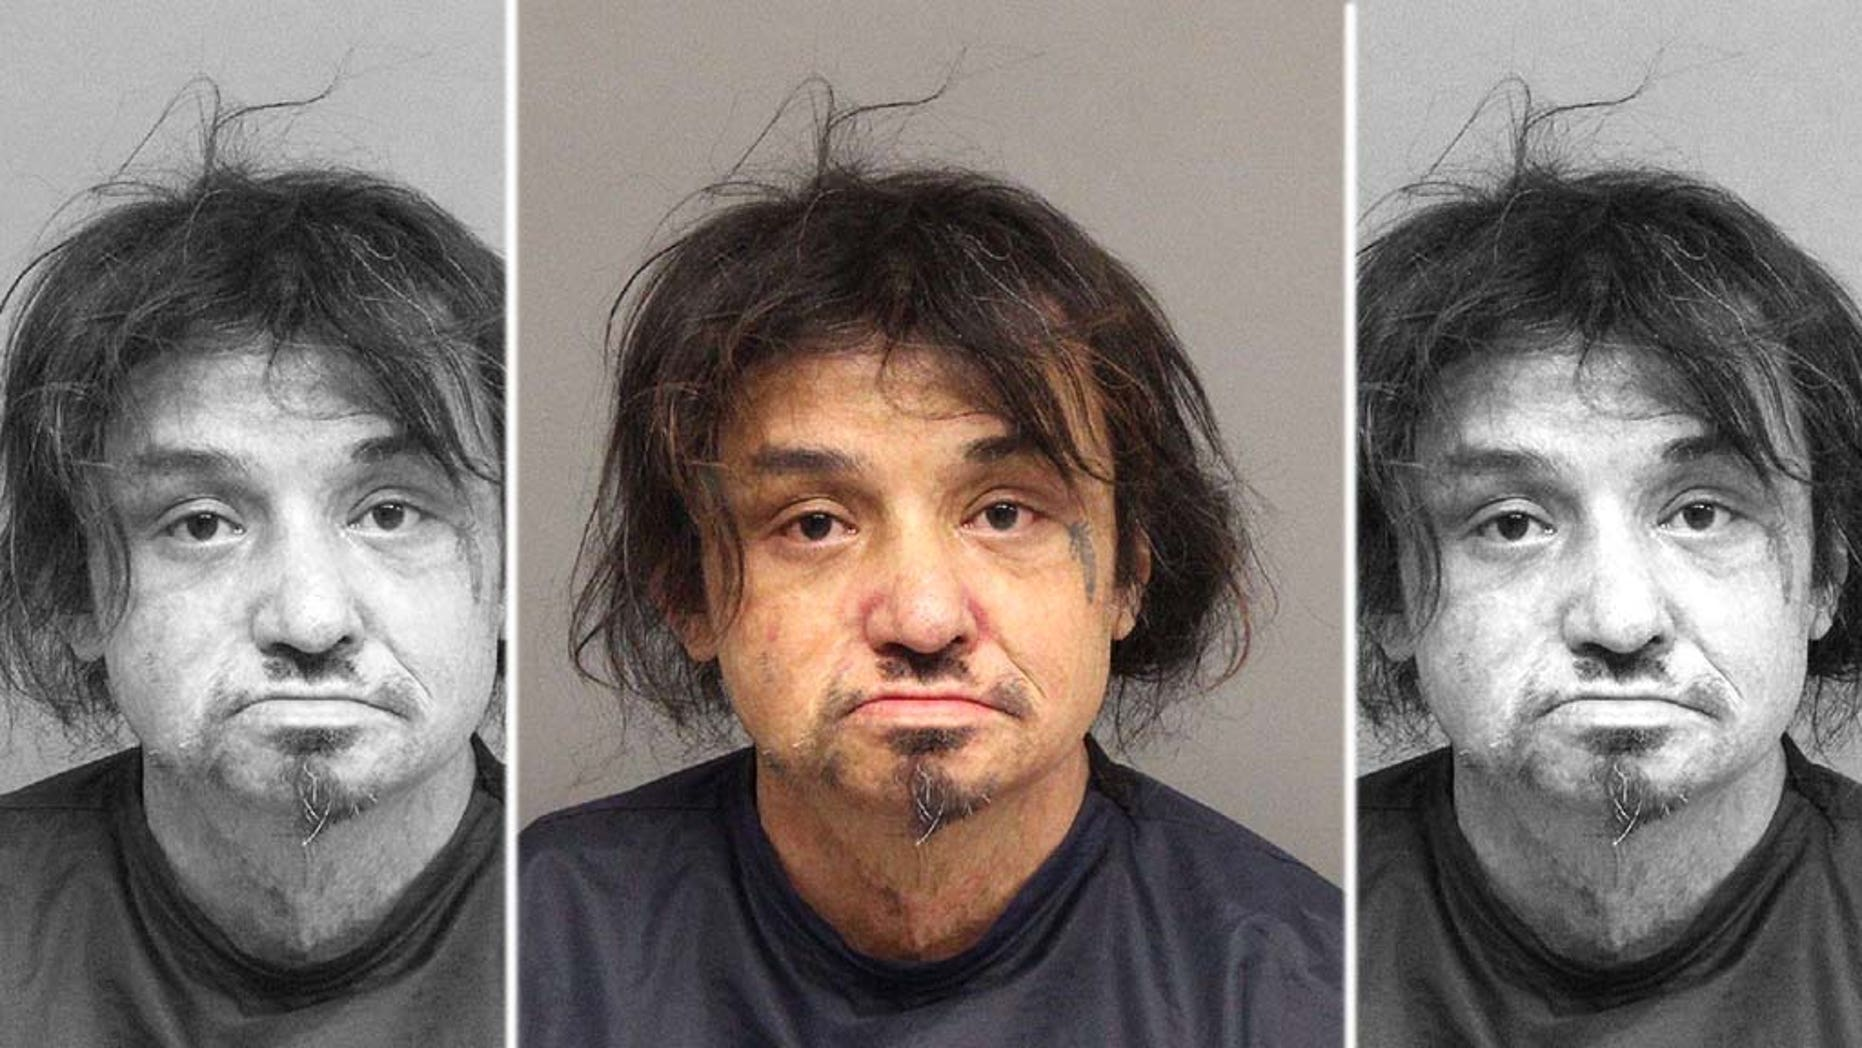 Authorities in Nebraska arrested an alleged ax-wielding man on Wednesday who's accused of threatening his roommates after becoming unhappy with the thermostat temperature.